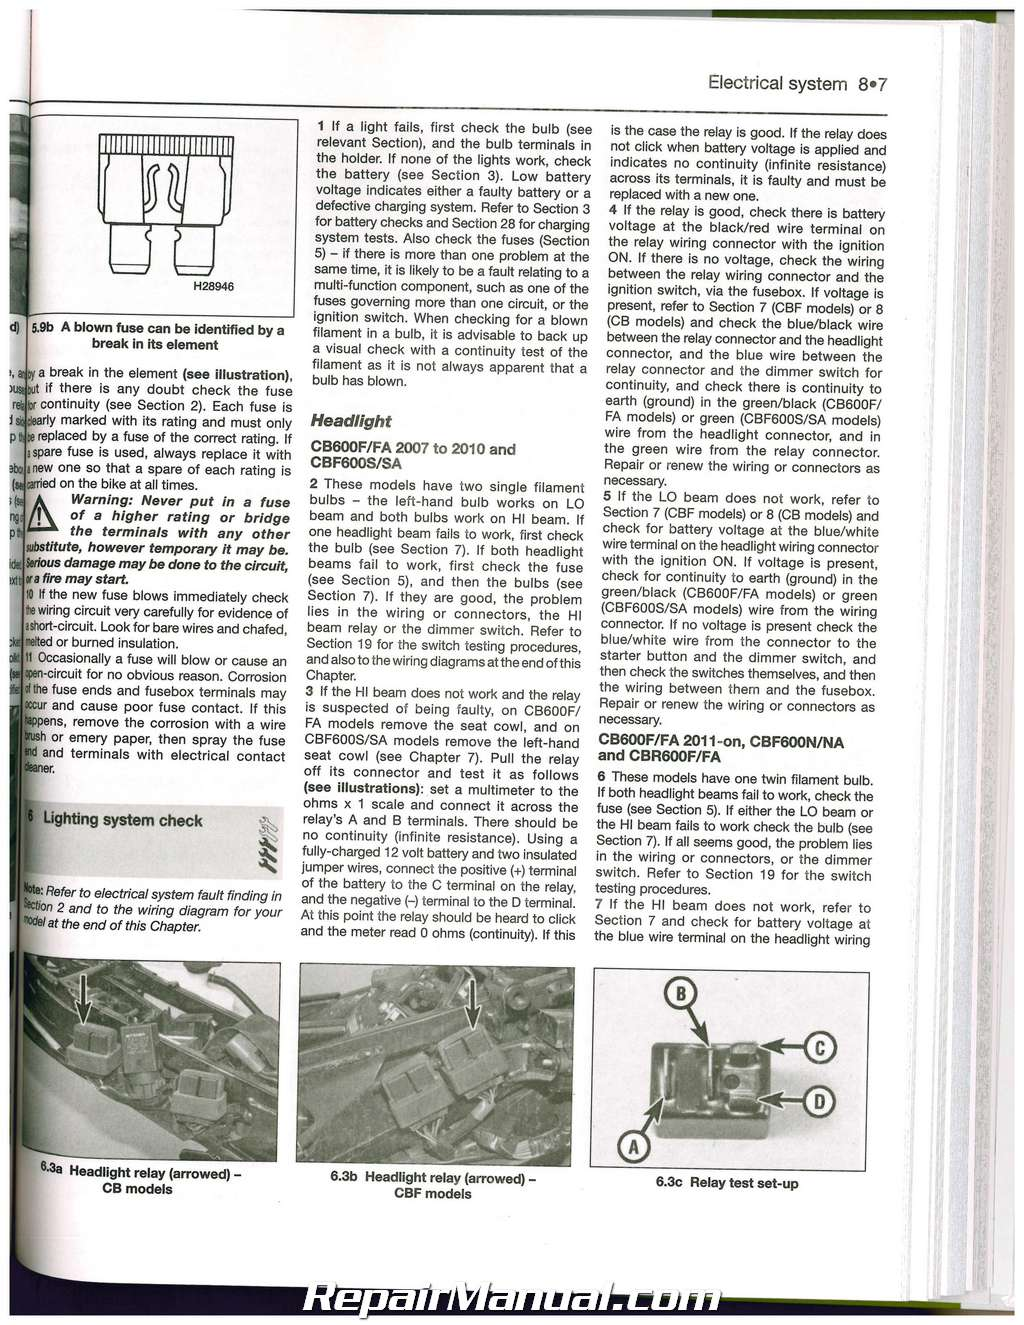 2007 Repair Manual Rav4 Wiring Diagram Pdf Provincial